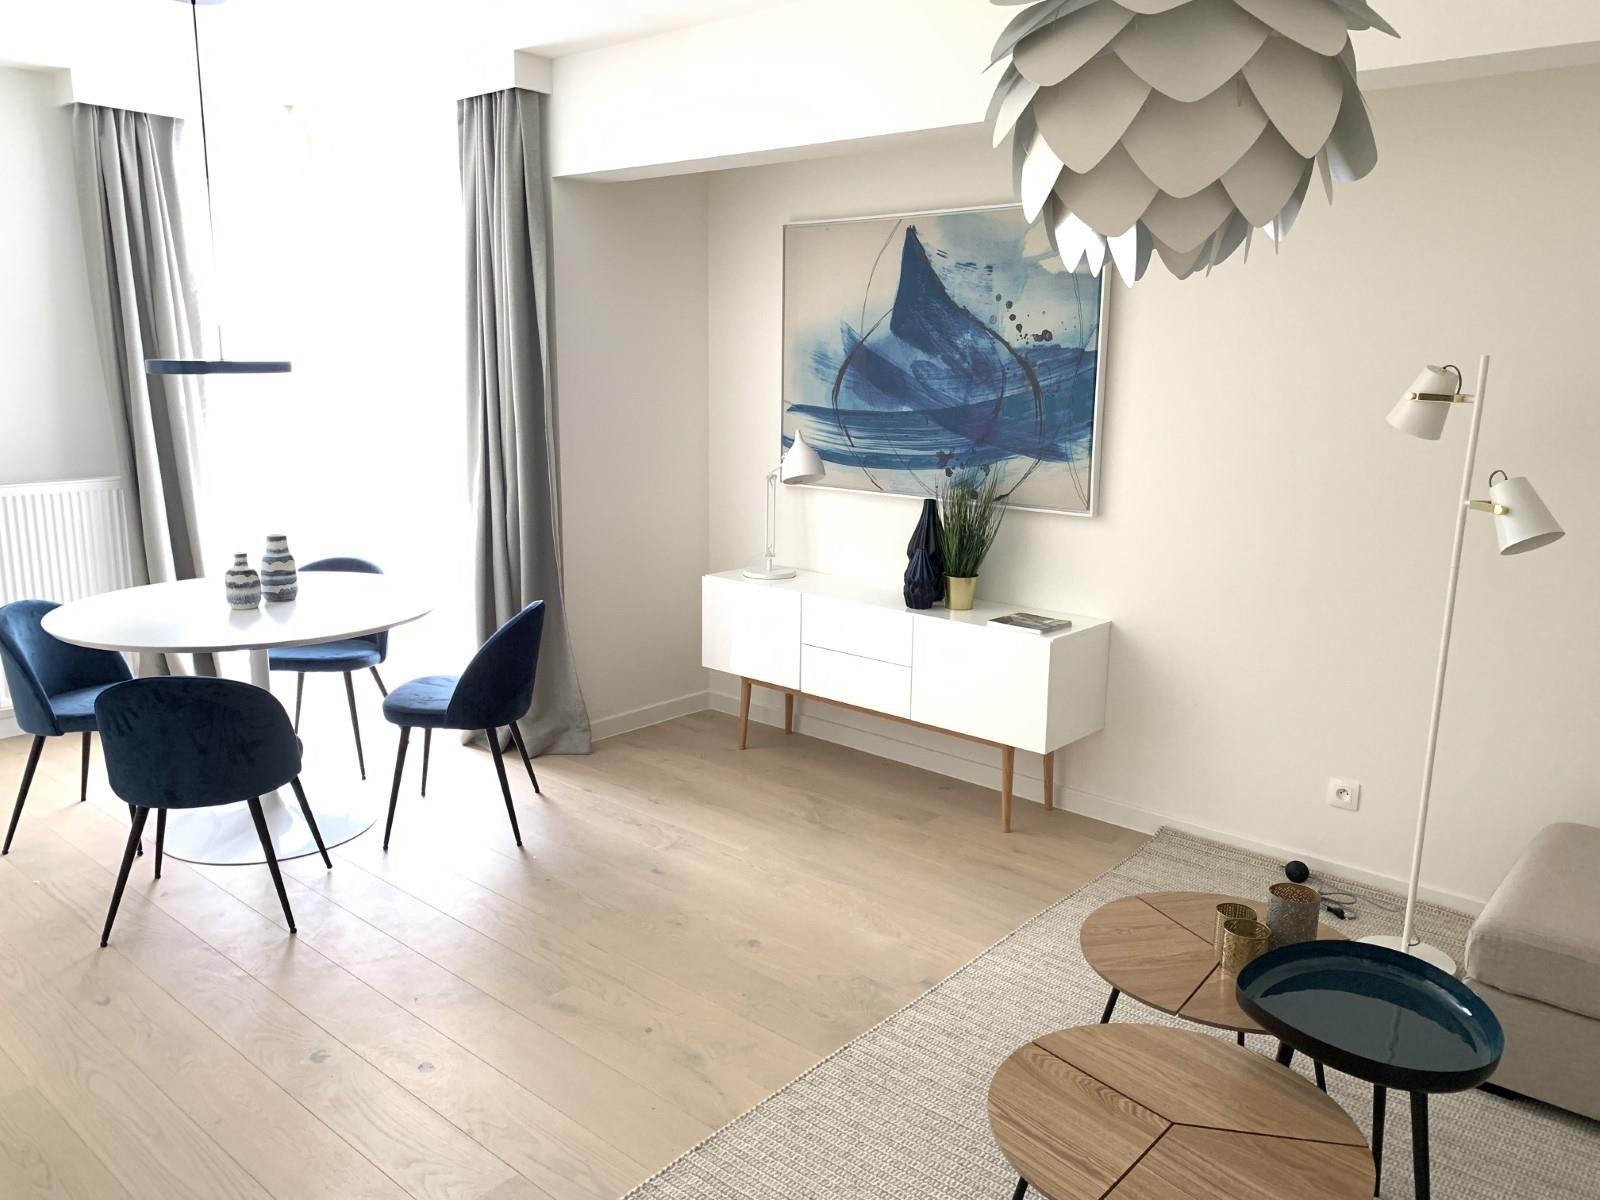 Appartement exceptionnel - Schaerbeek - #3827635-10